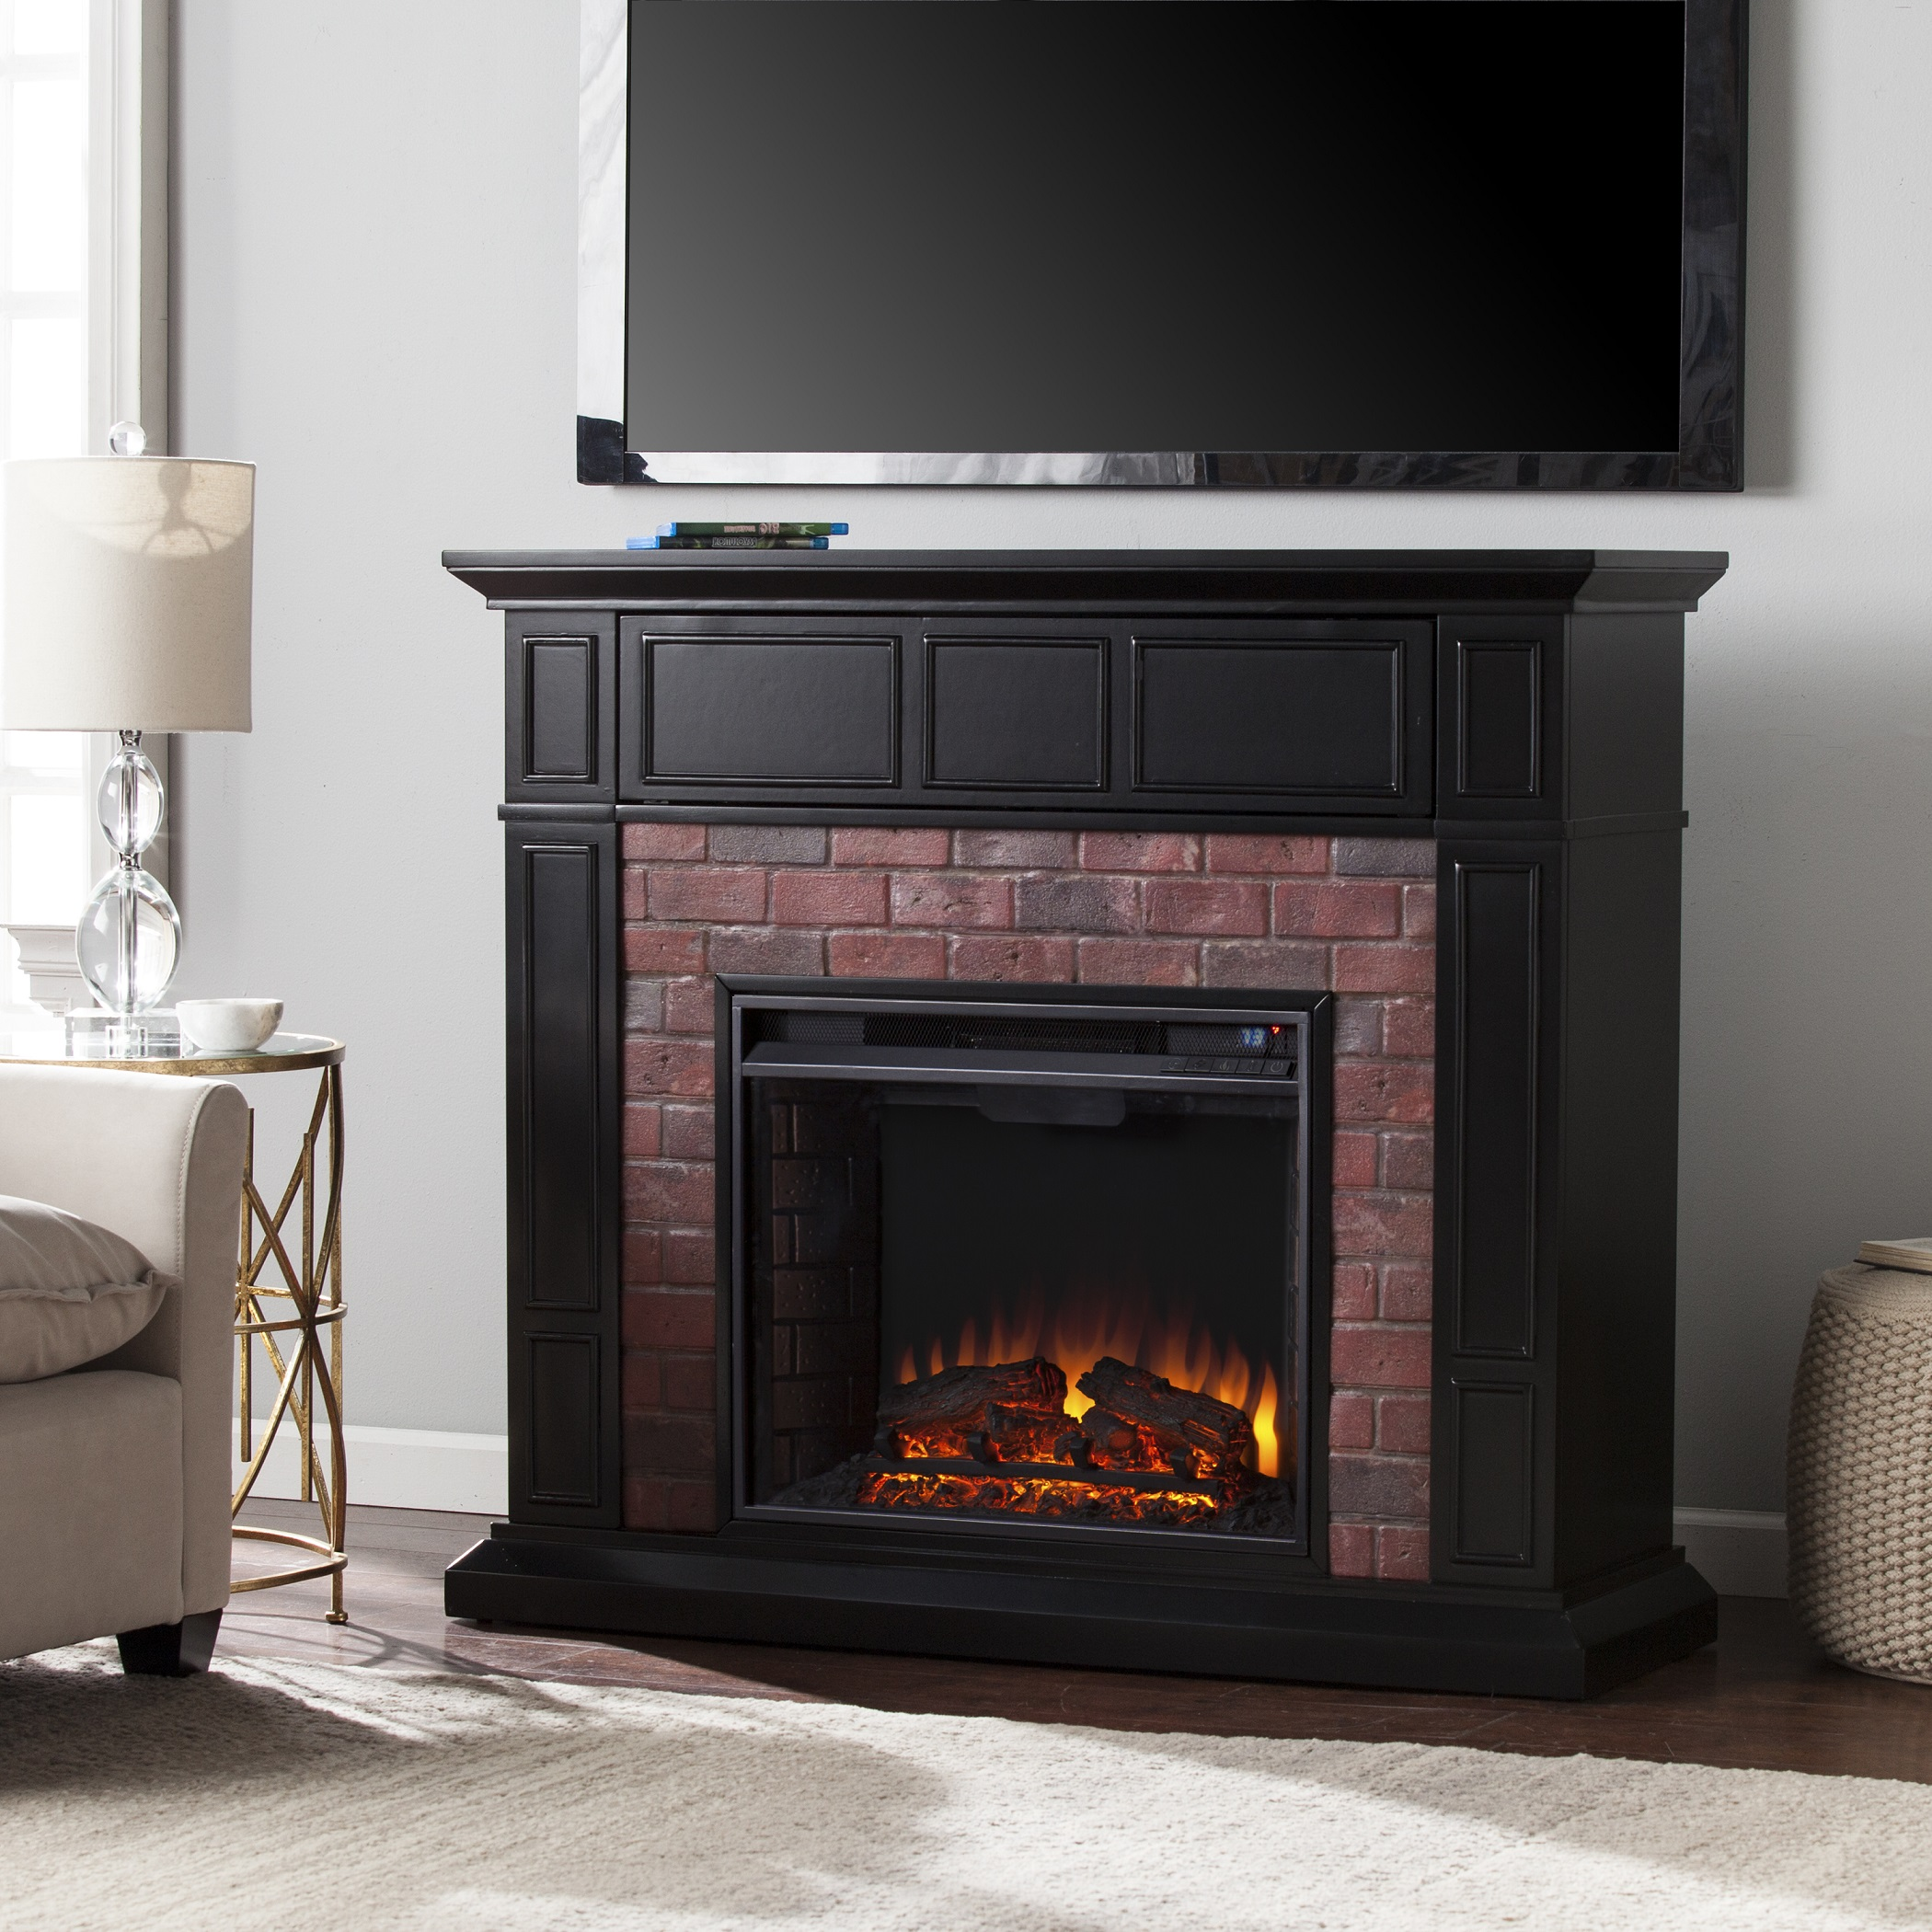 Kyledale faux brick electric media fireplace satin black w faux red brick fe9380 fi9380 - Black and white fireplace ...